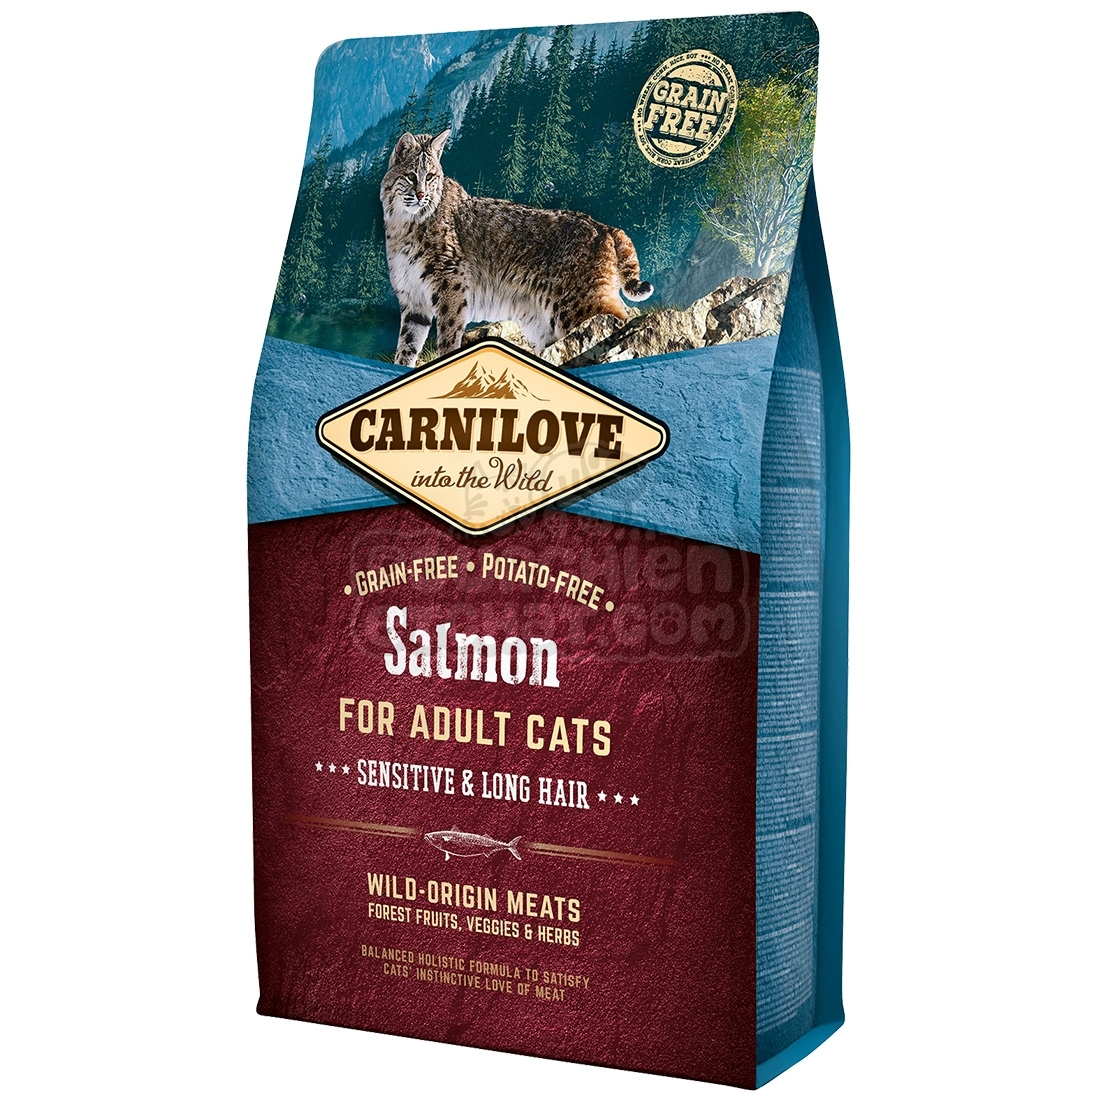 salmon chat Dentalife cat treats are designed with an innovative, chewy yet porous texture to reduce tartar and plaque try our savory salmon recipe.